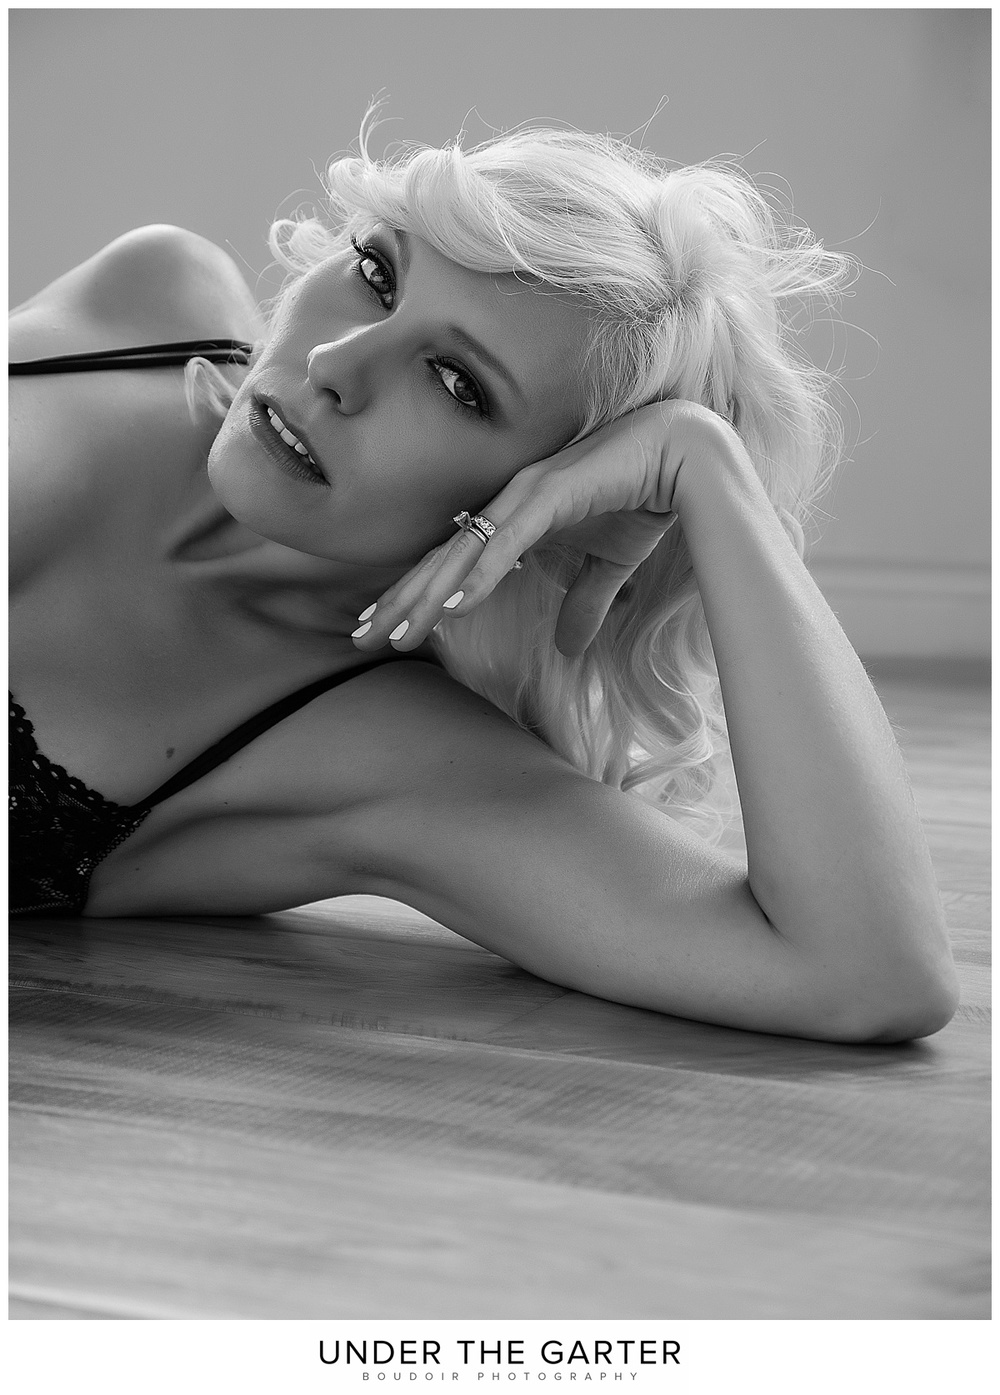 boudoir photography floor pose detail portrait.jpg